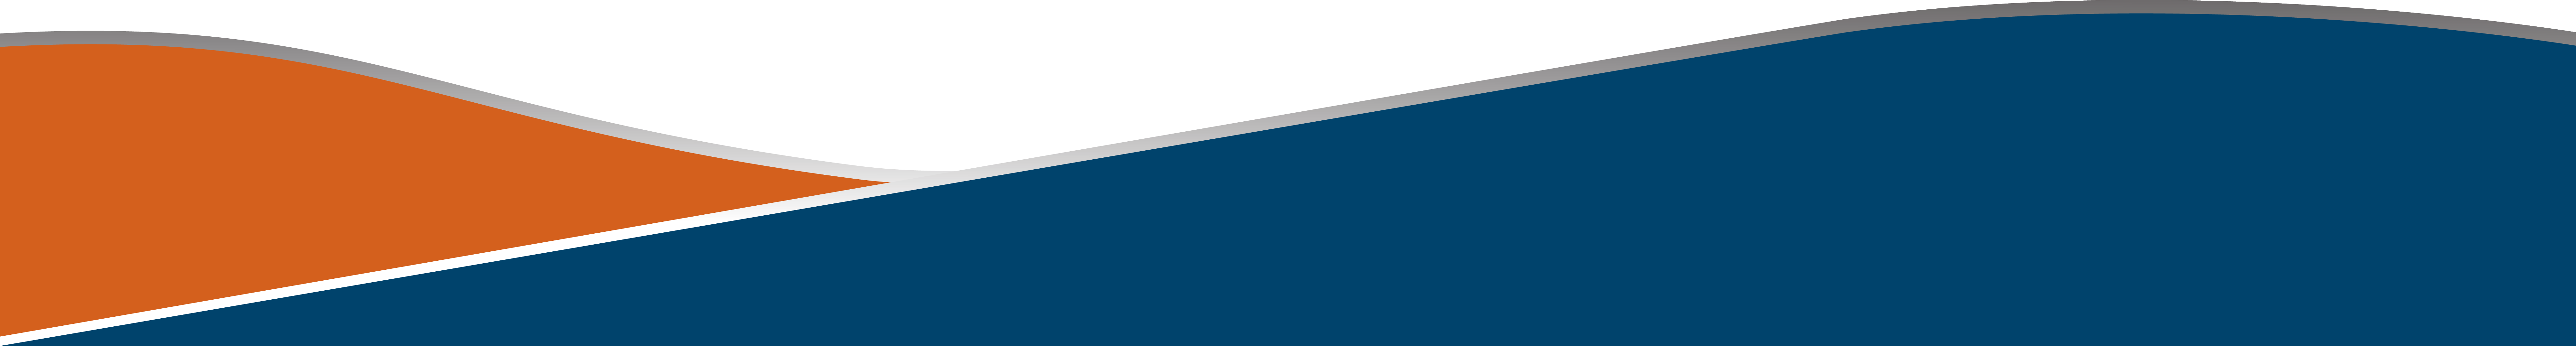 Image of header using Dooley colours.